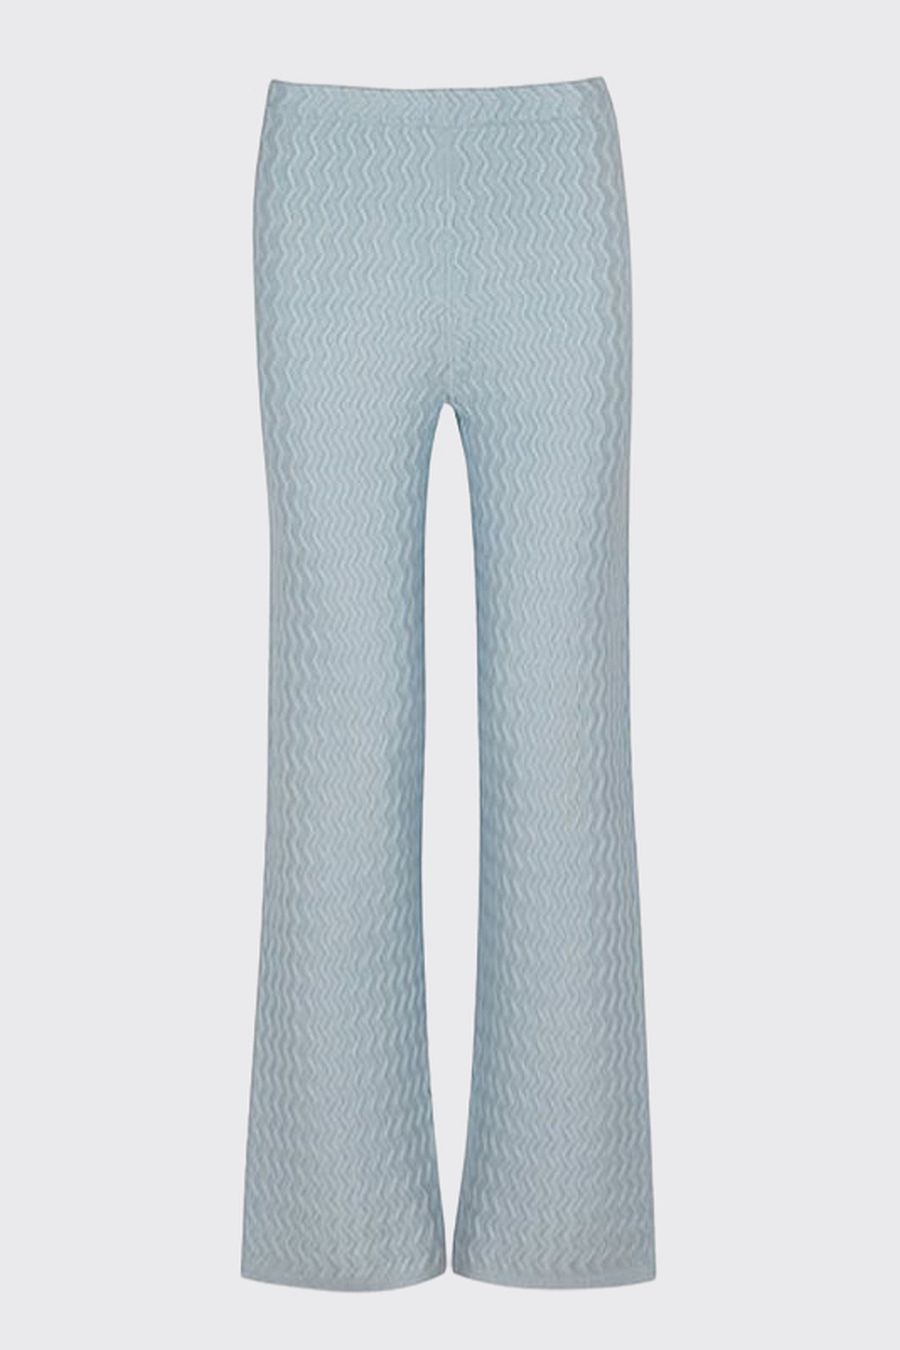 House Of Sunny Pacific Pants